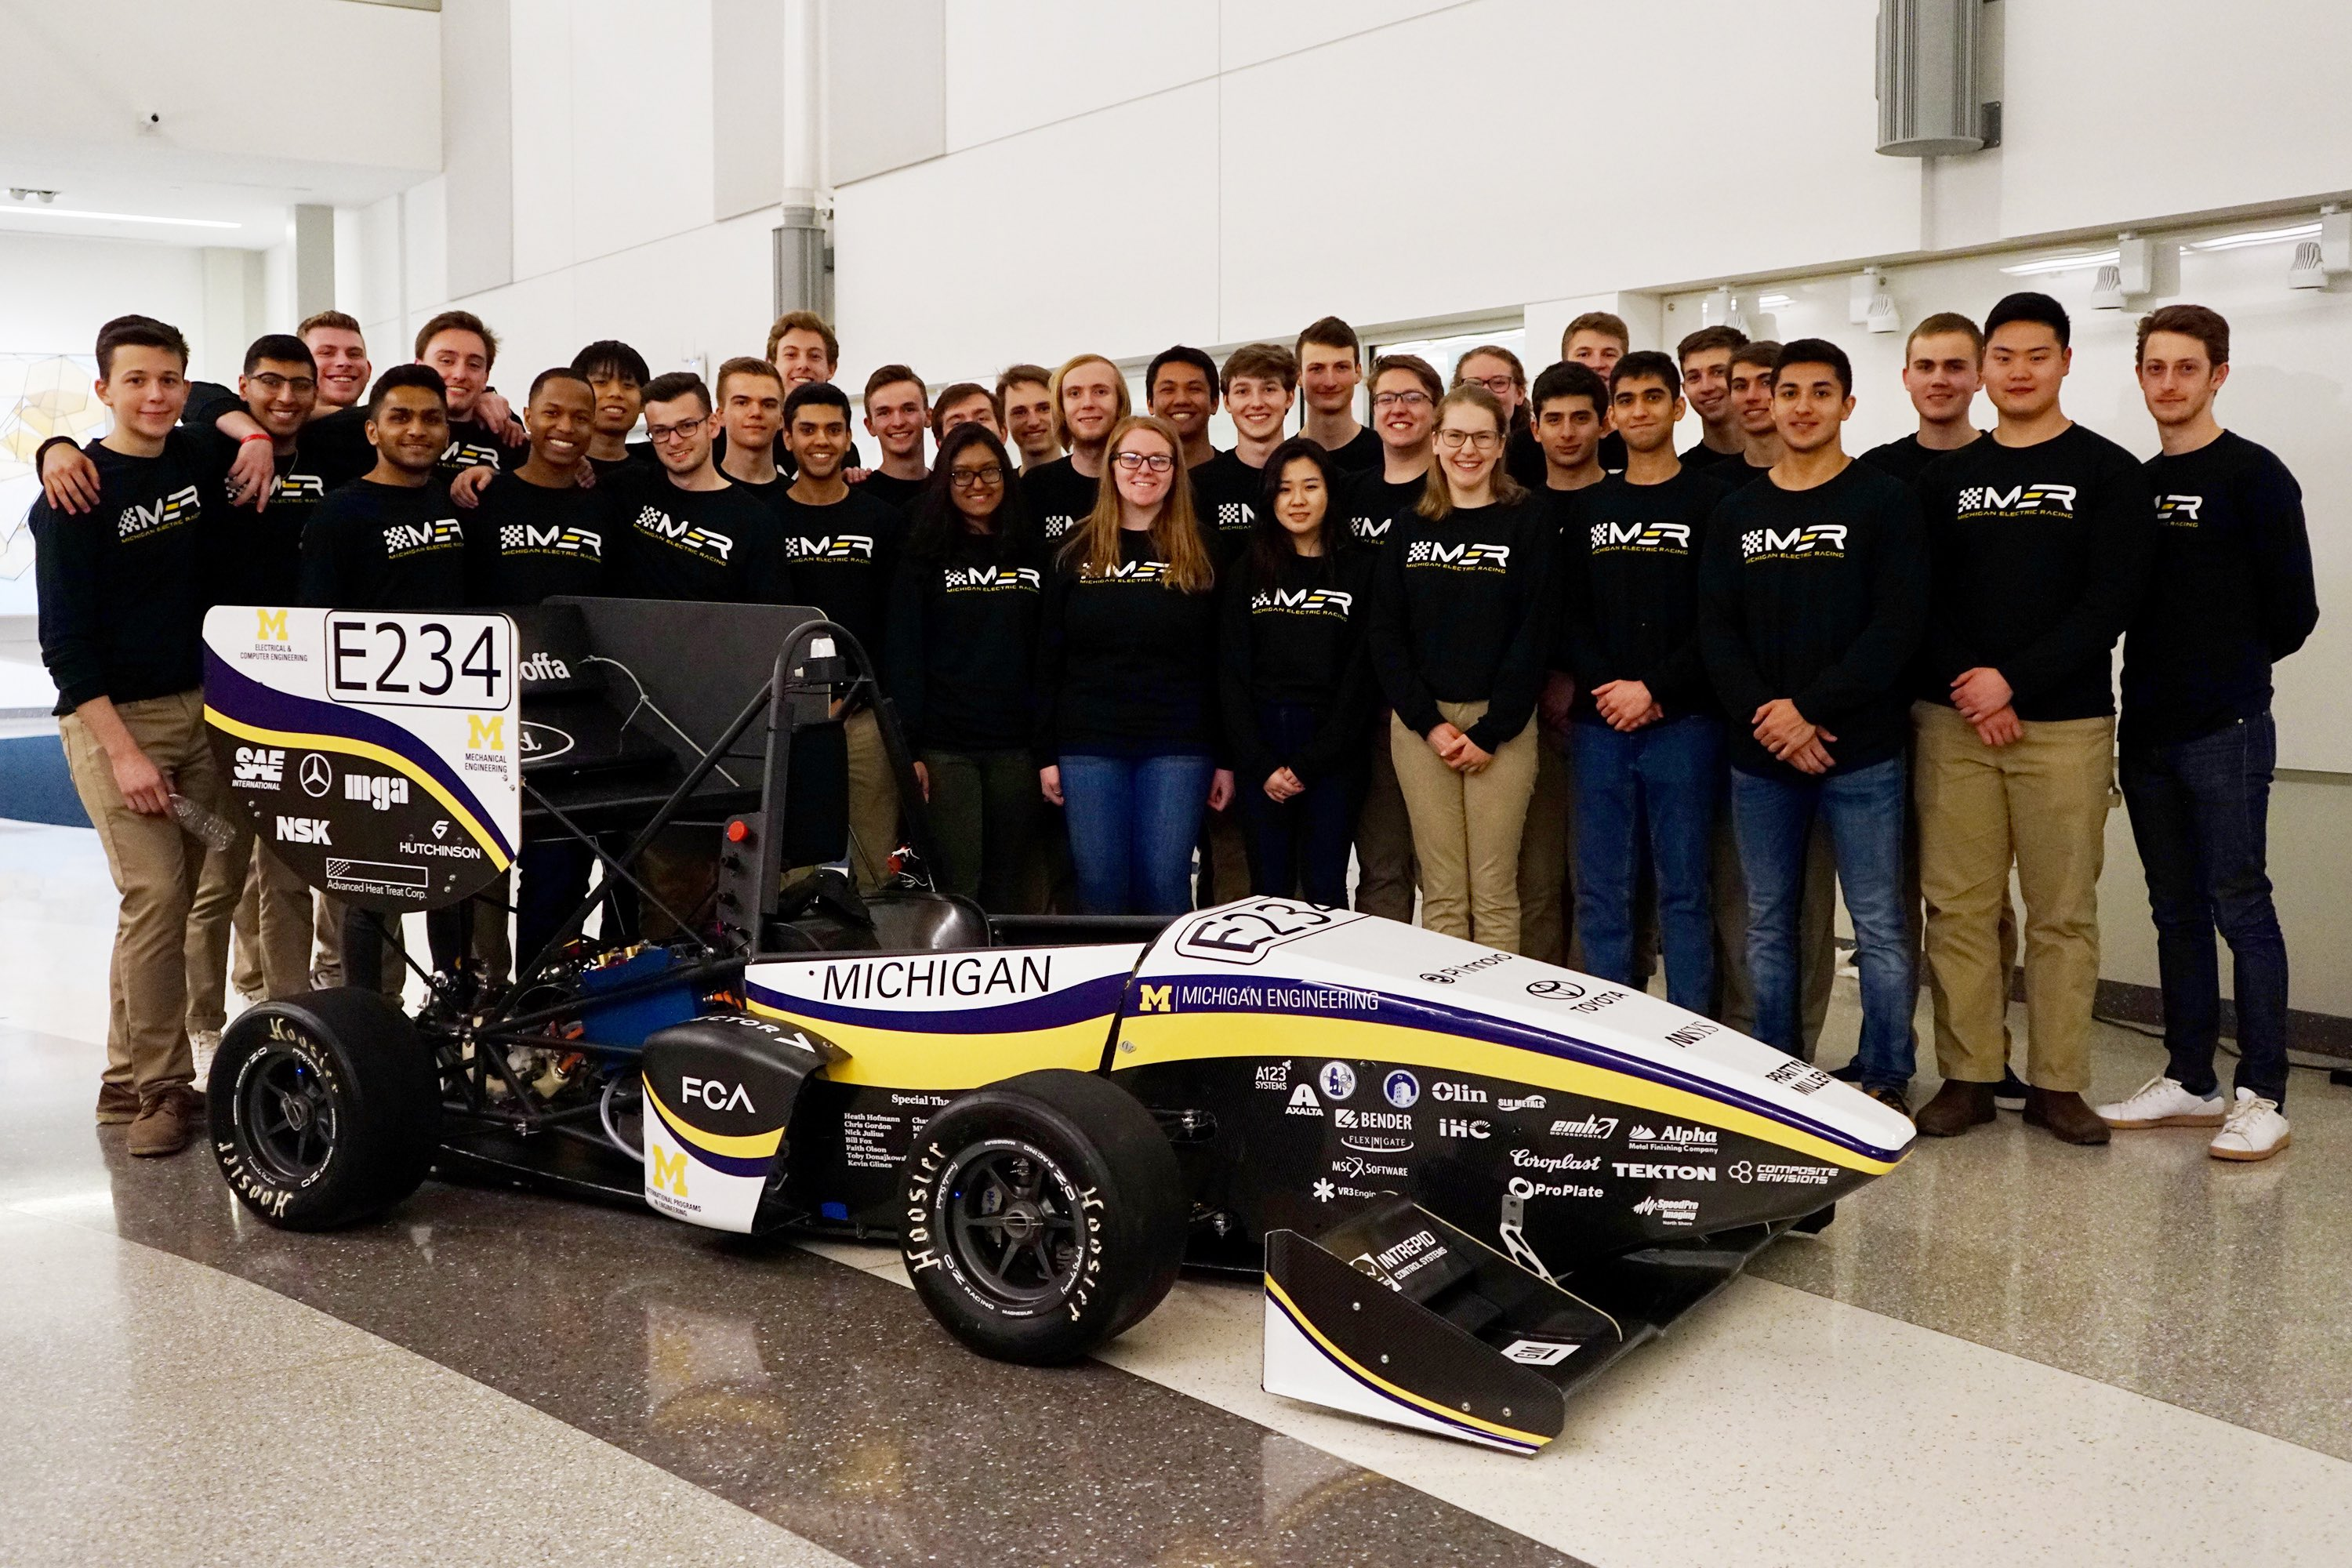 The Michigan Electric Racing Team.